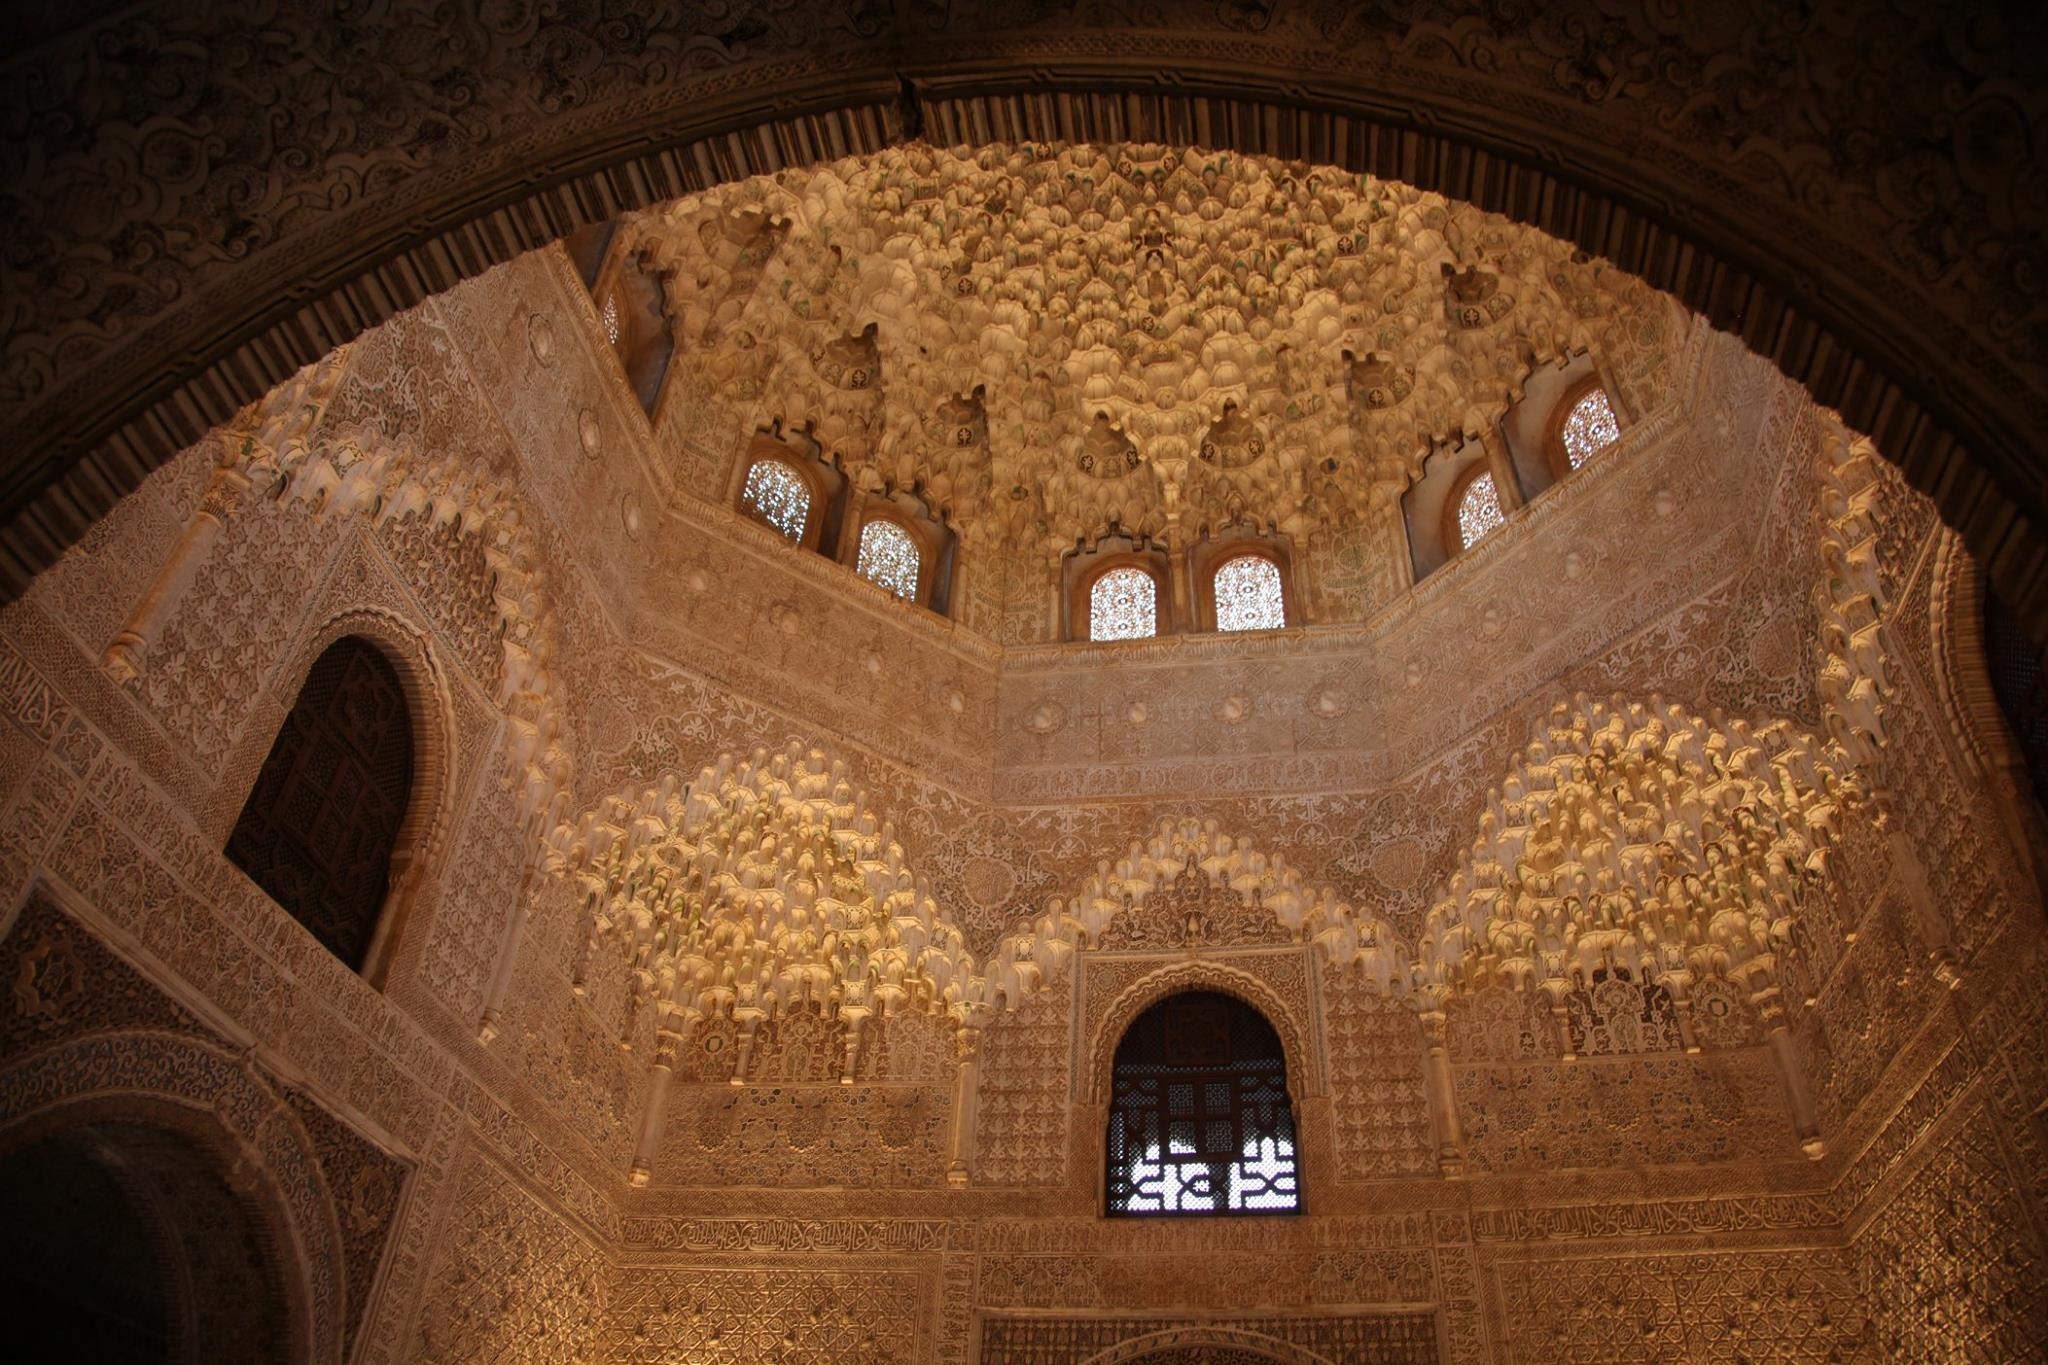 Alhambra Palce, Granada, Spain. Photo by MANOj.